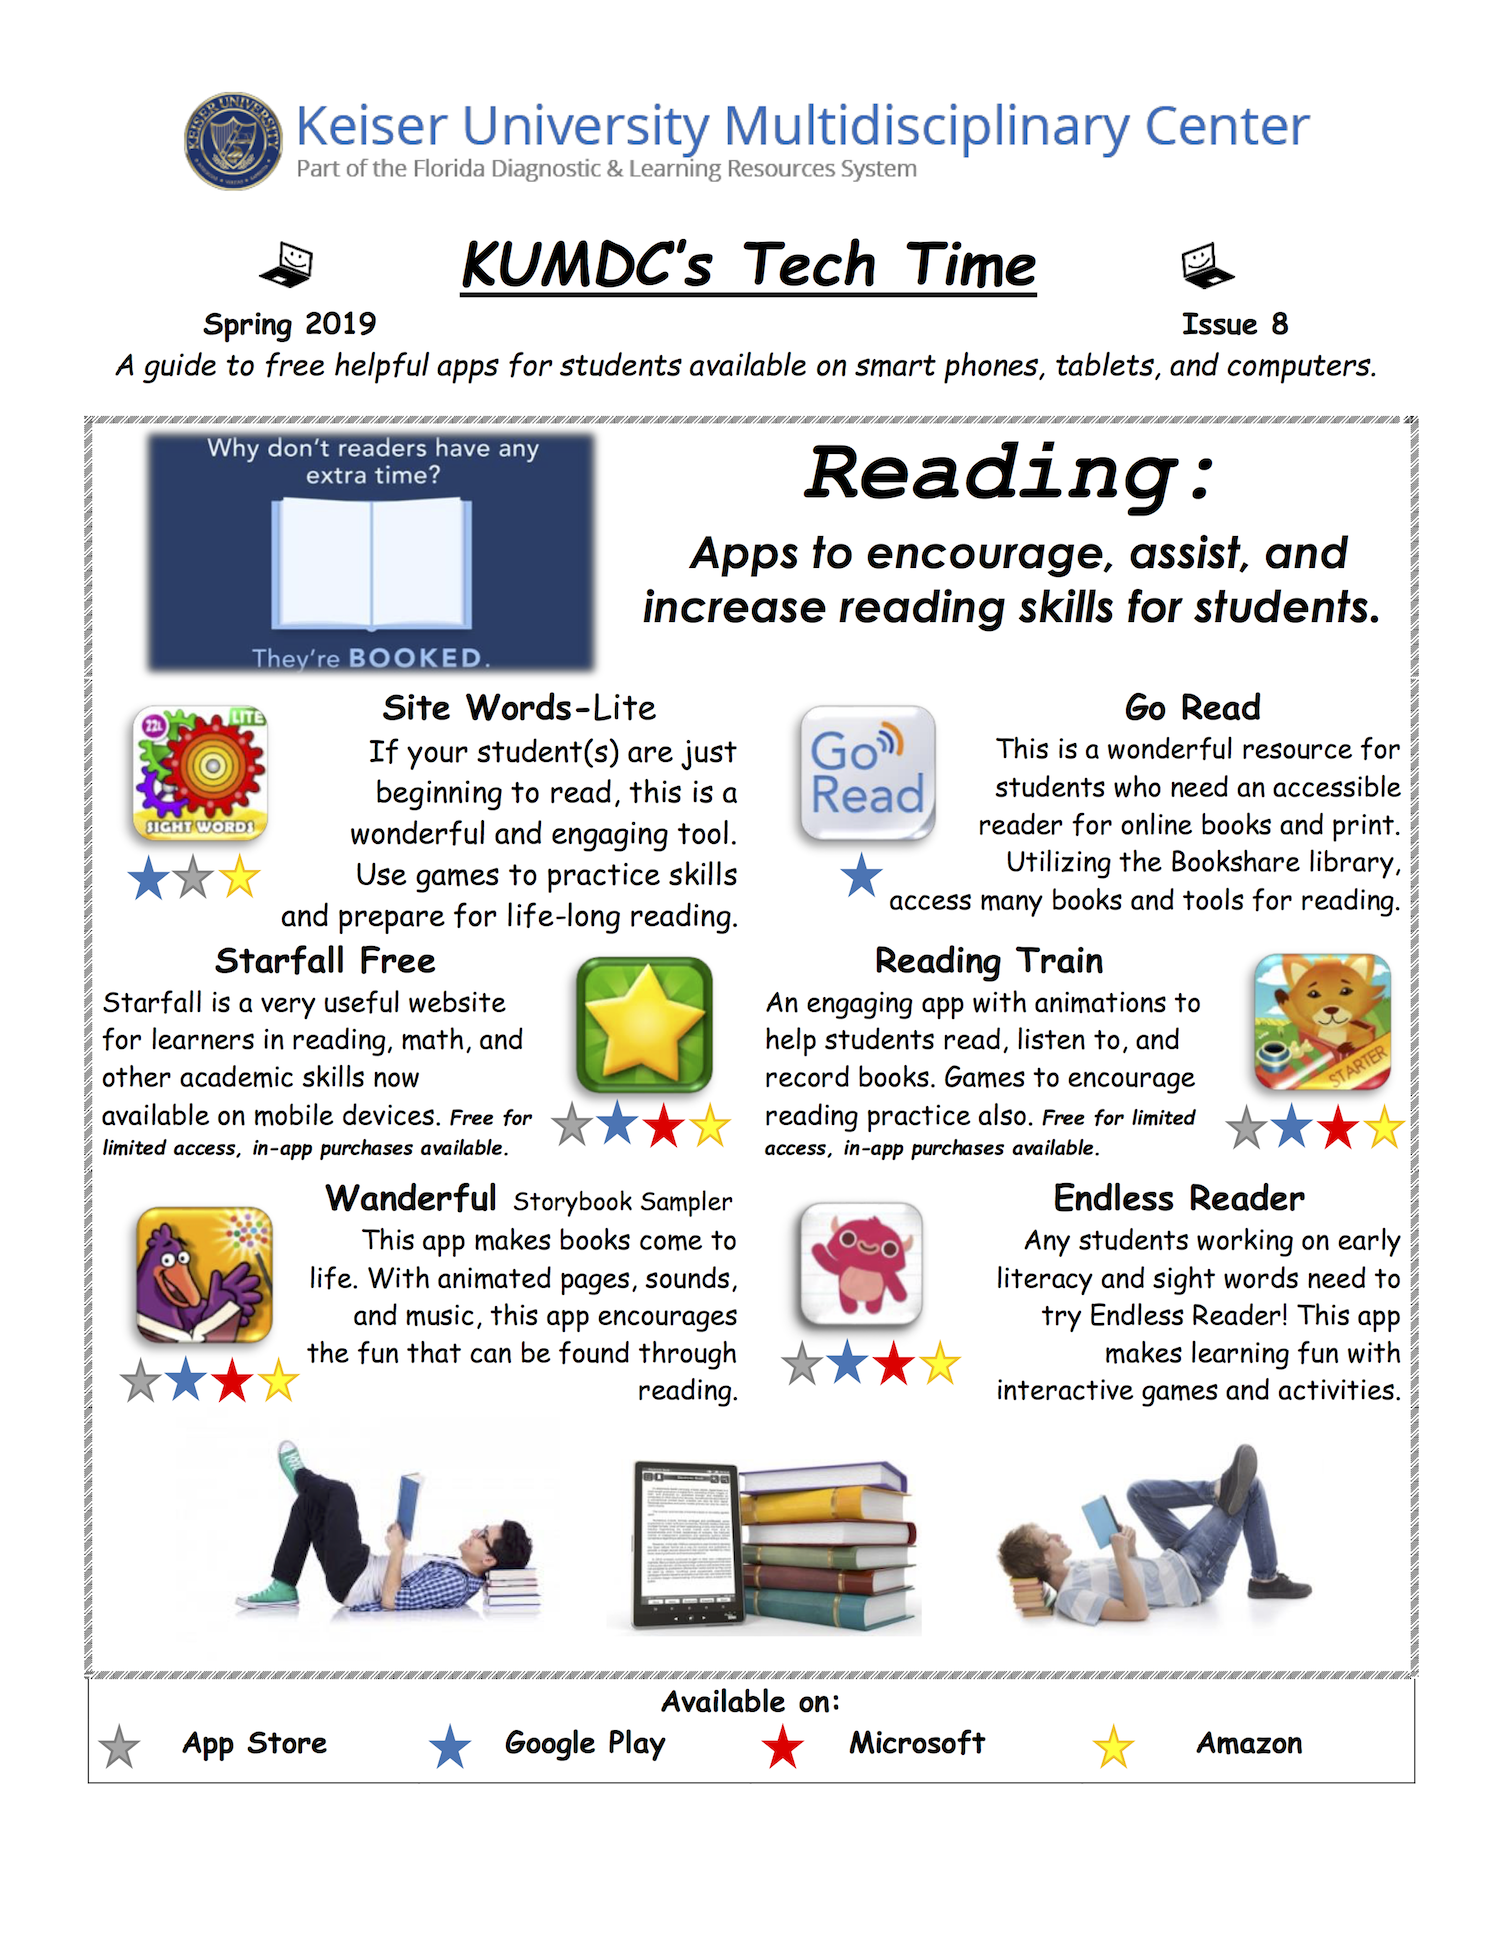 image with clickable link to Spring 2019 TechTime Newsletter